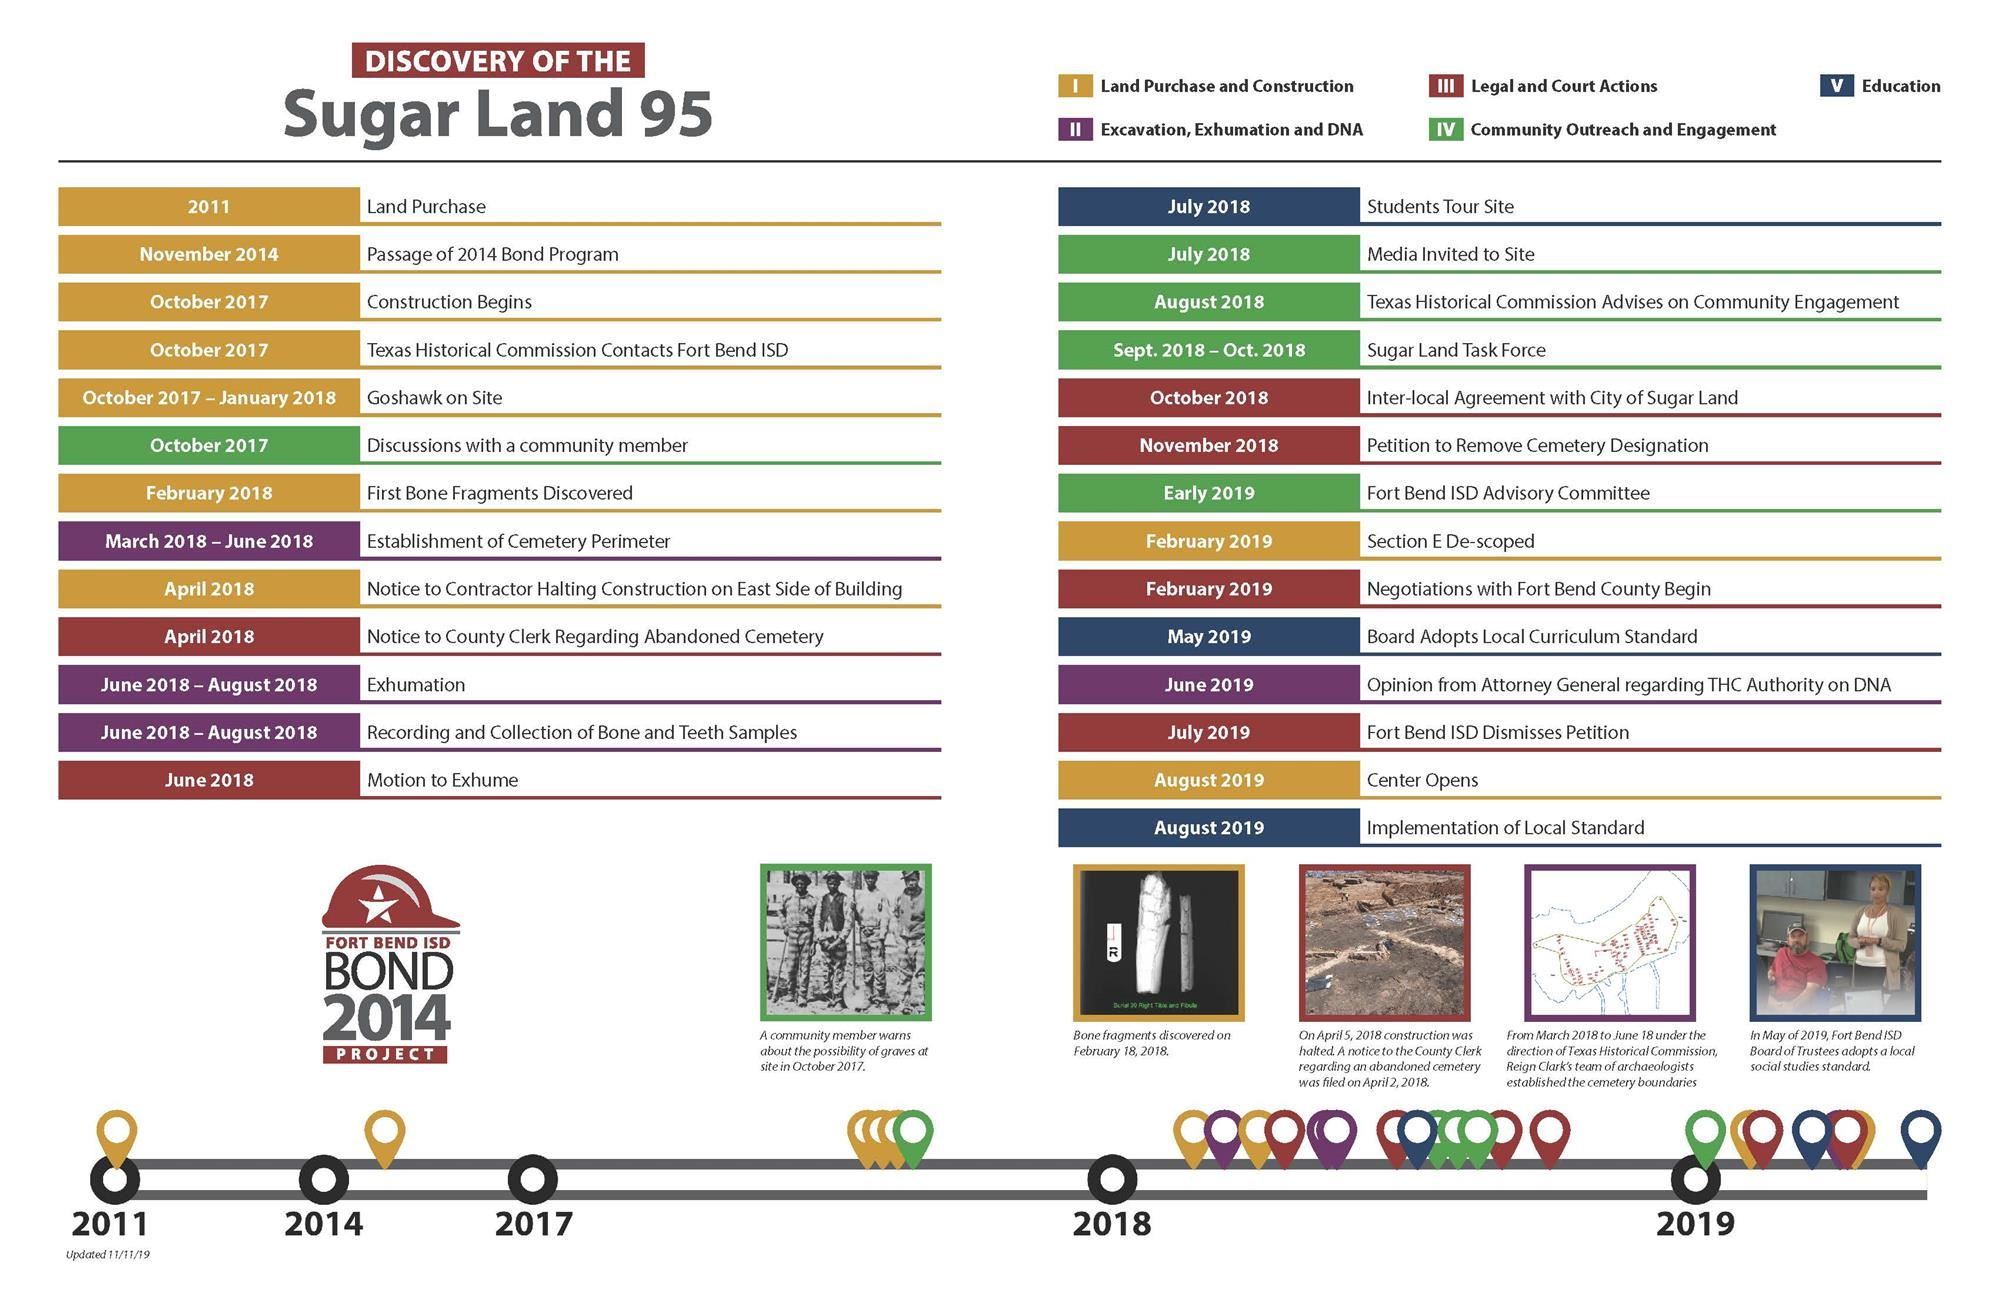 Discover of the Sugar Land 95 Timeline